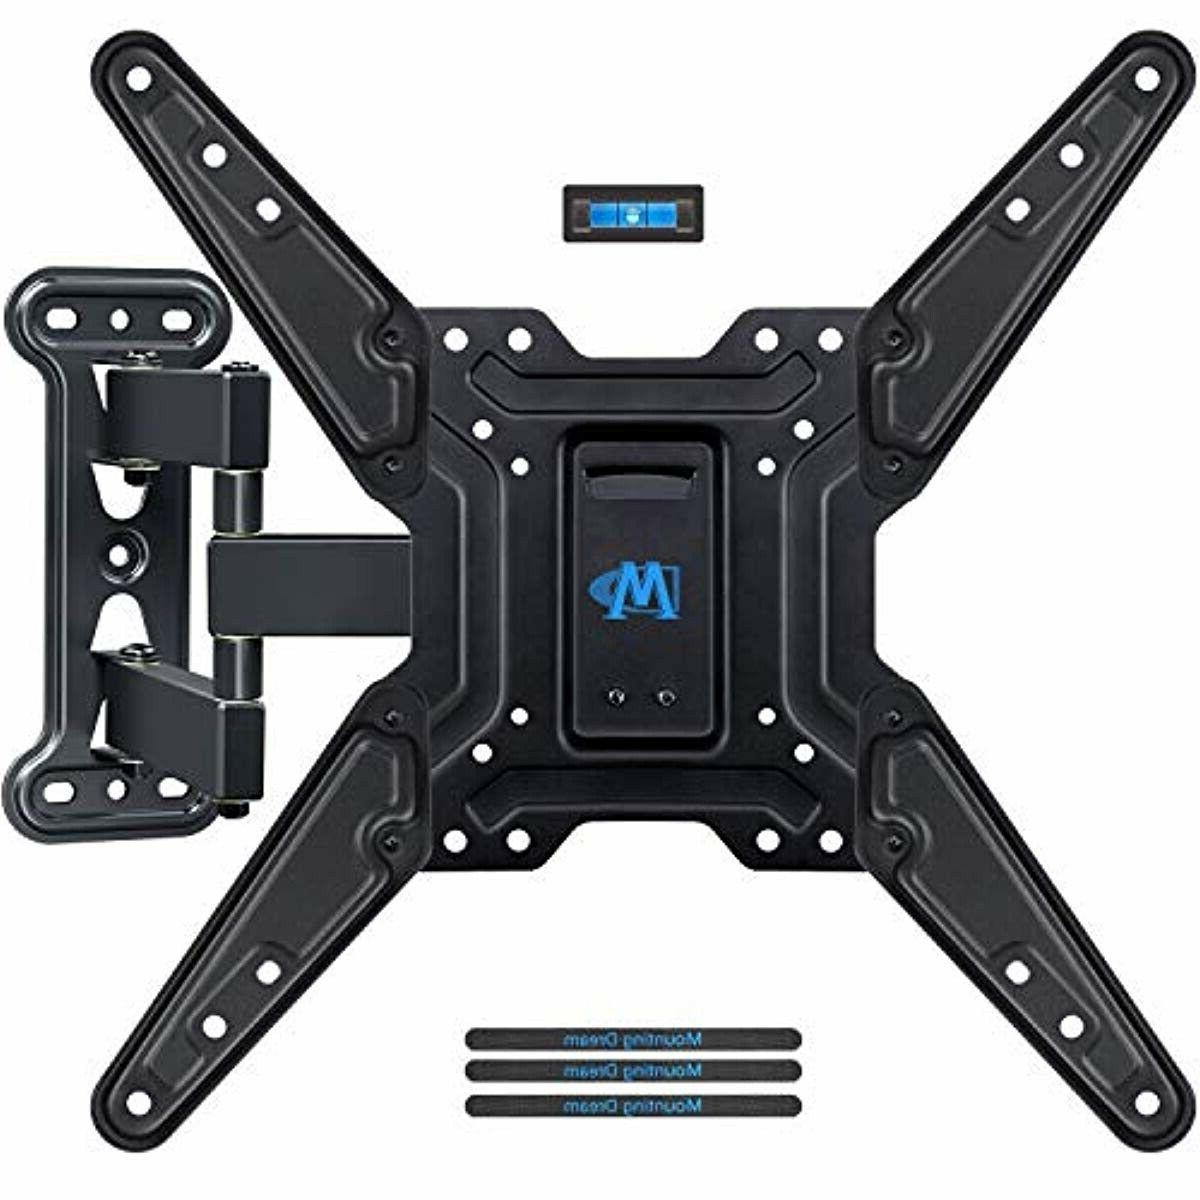 Mounting Dream Full Motion TV Mounts Bracket with Perfect Center for